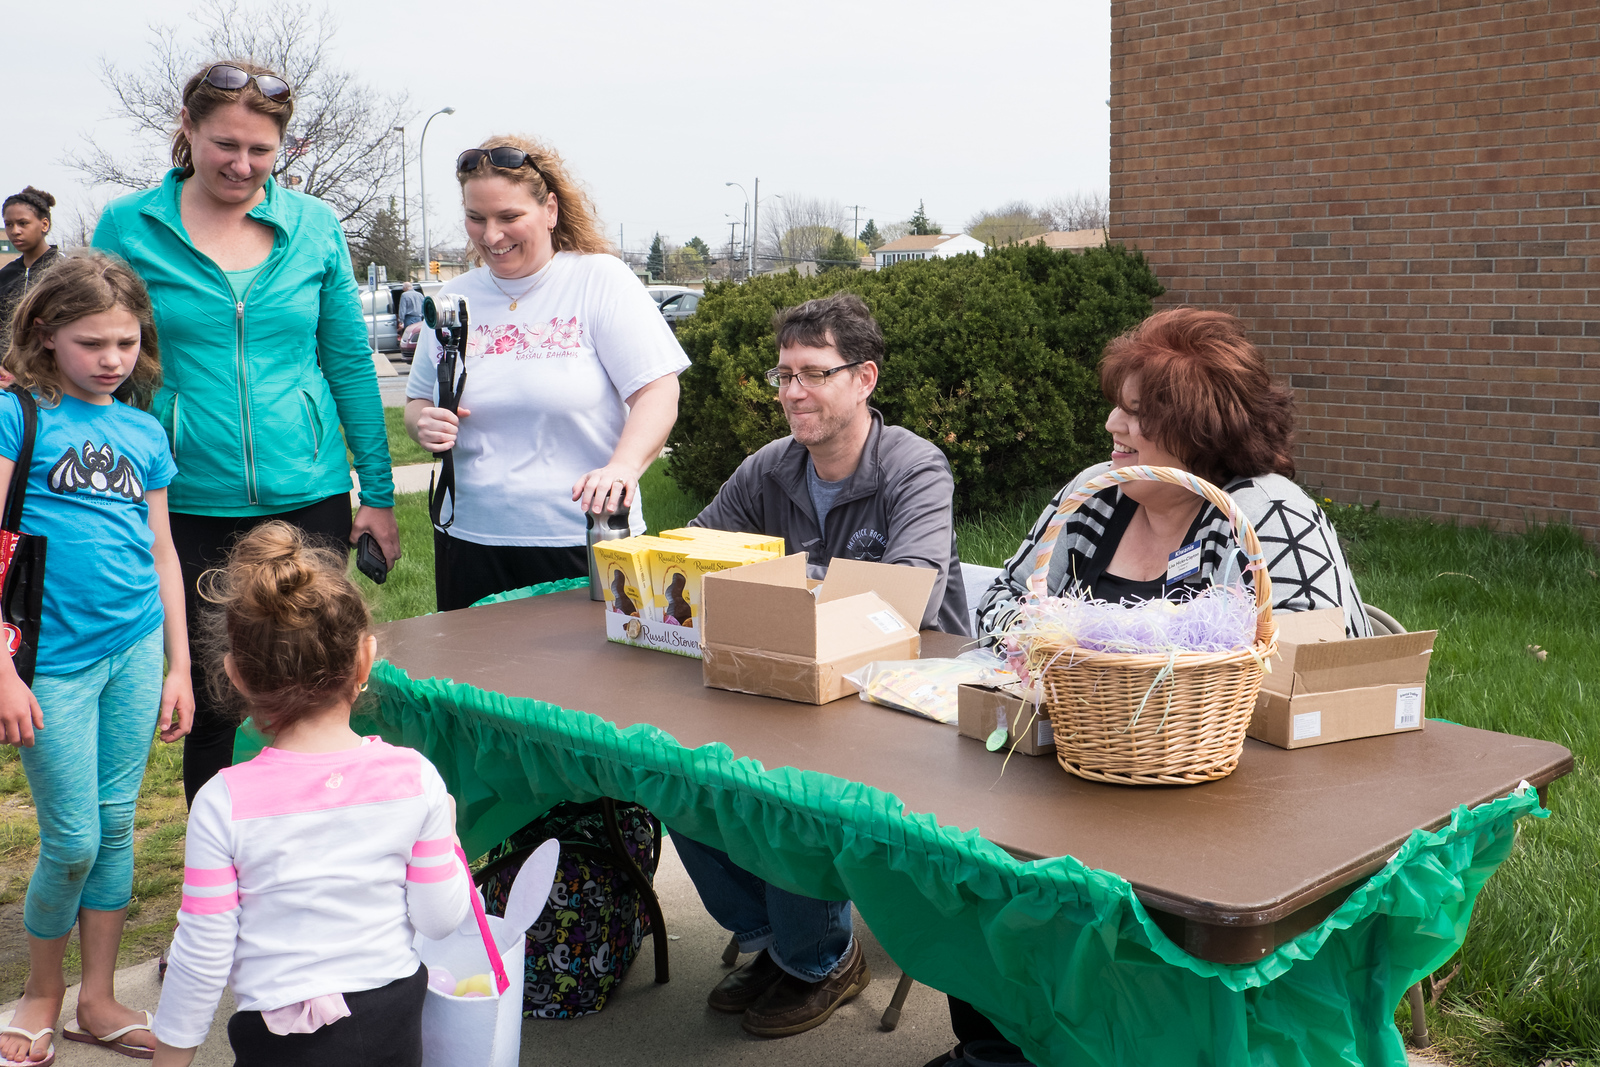 Kids were able to trade in plastic coins found in the eggs for prizes. Photo by Debbie Malyn for the Press & Guide.